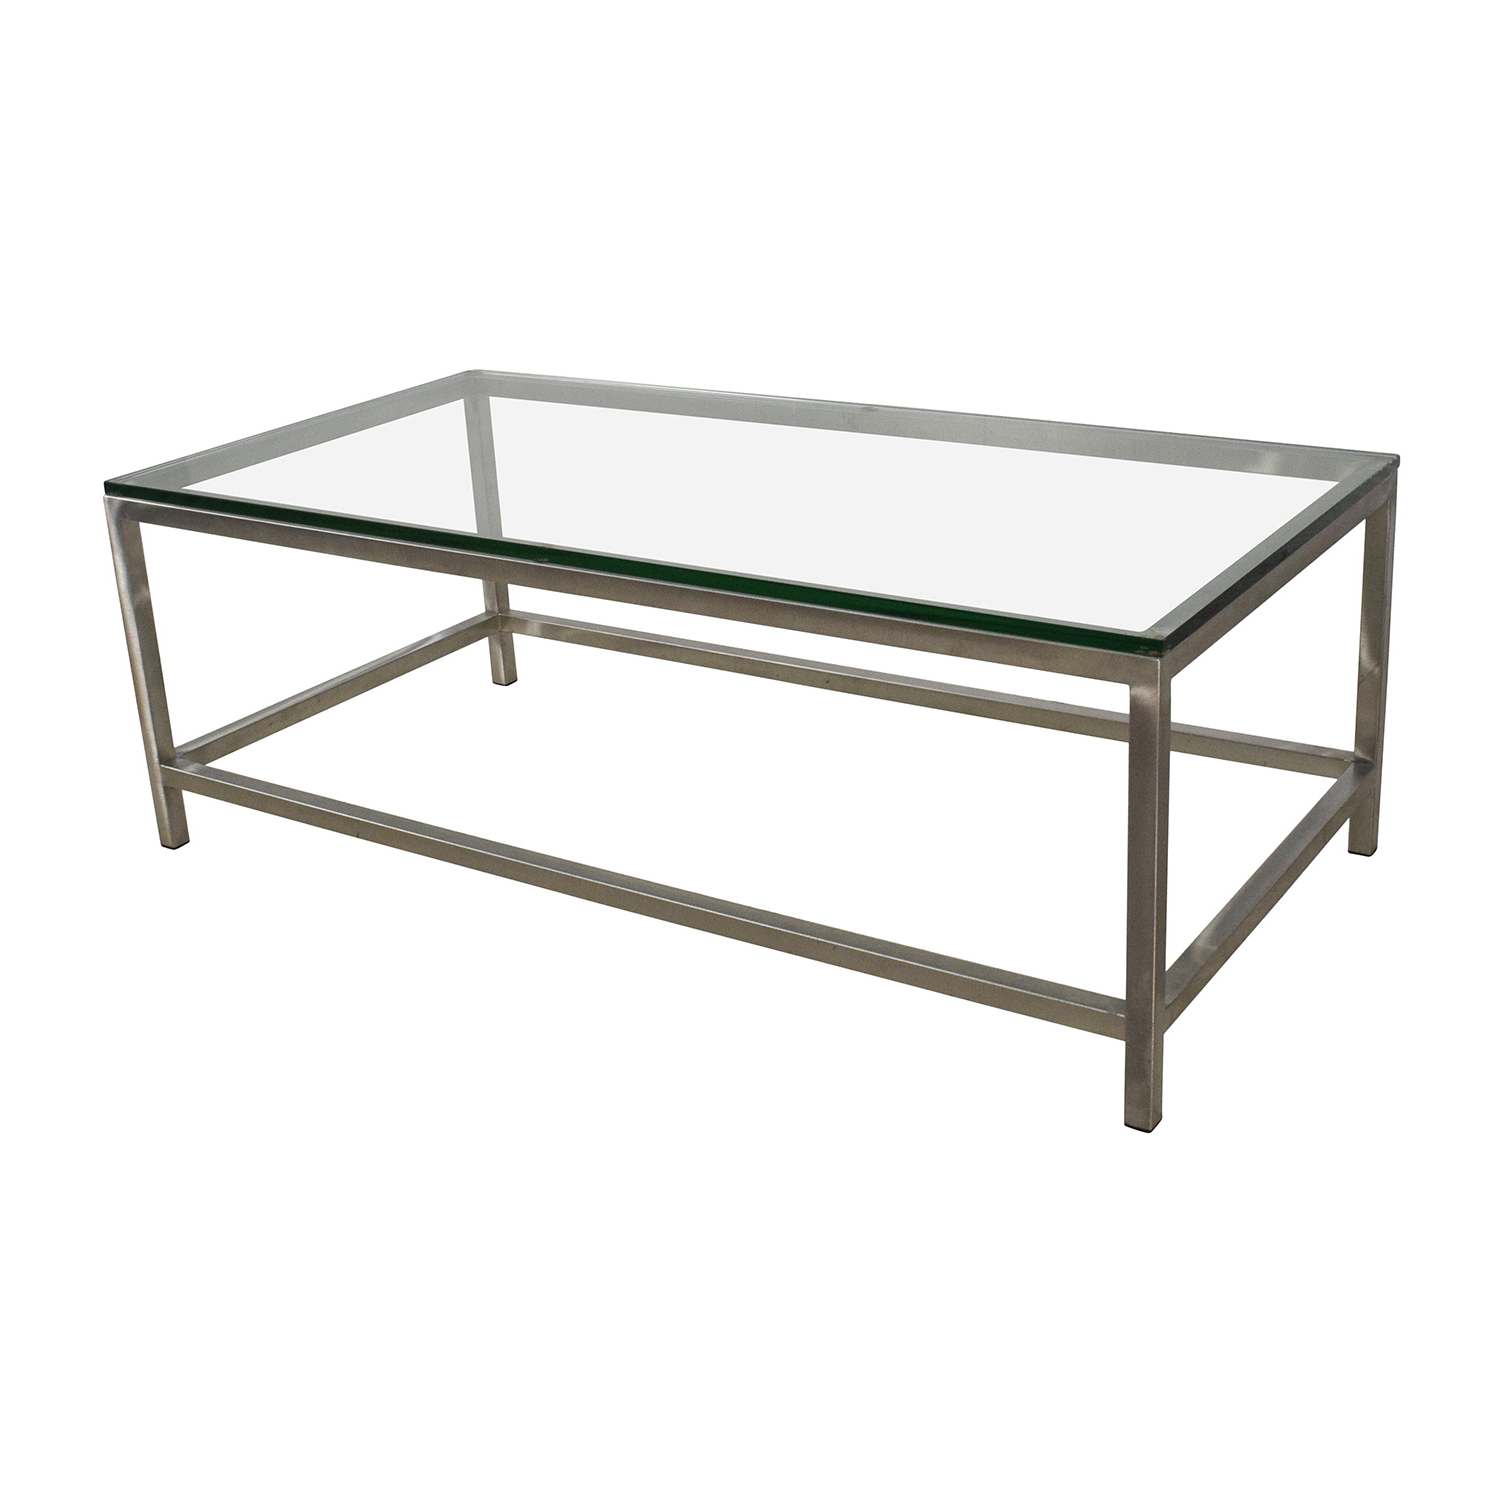 64% Off – Crate And Barrel Crate & Barrel Era Rectangular Glass Top For Era Glass Console Tables (Gallery 16 of 20)